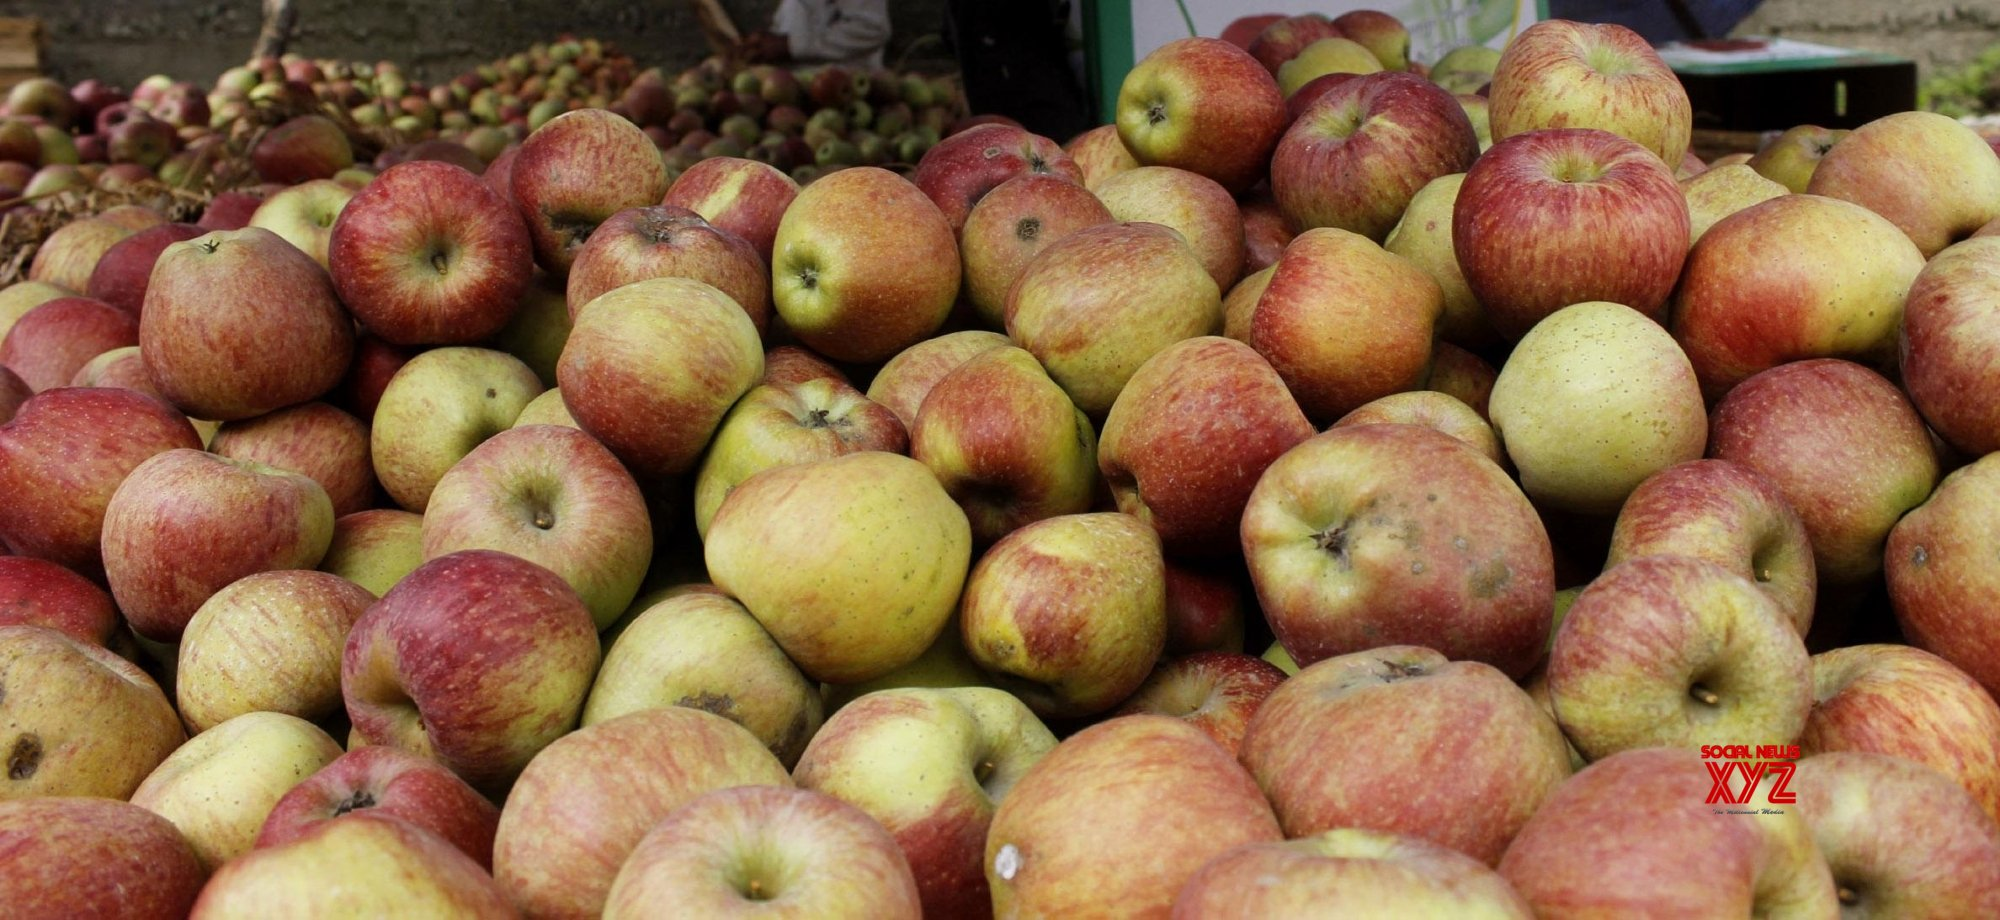 Himachal imports over 7 lakh apple roots to boost output